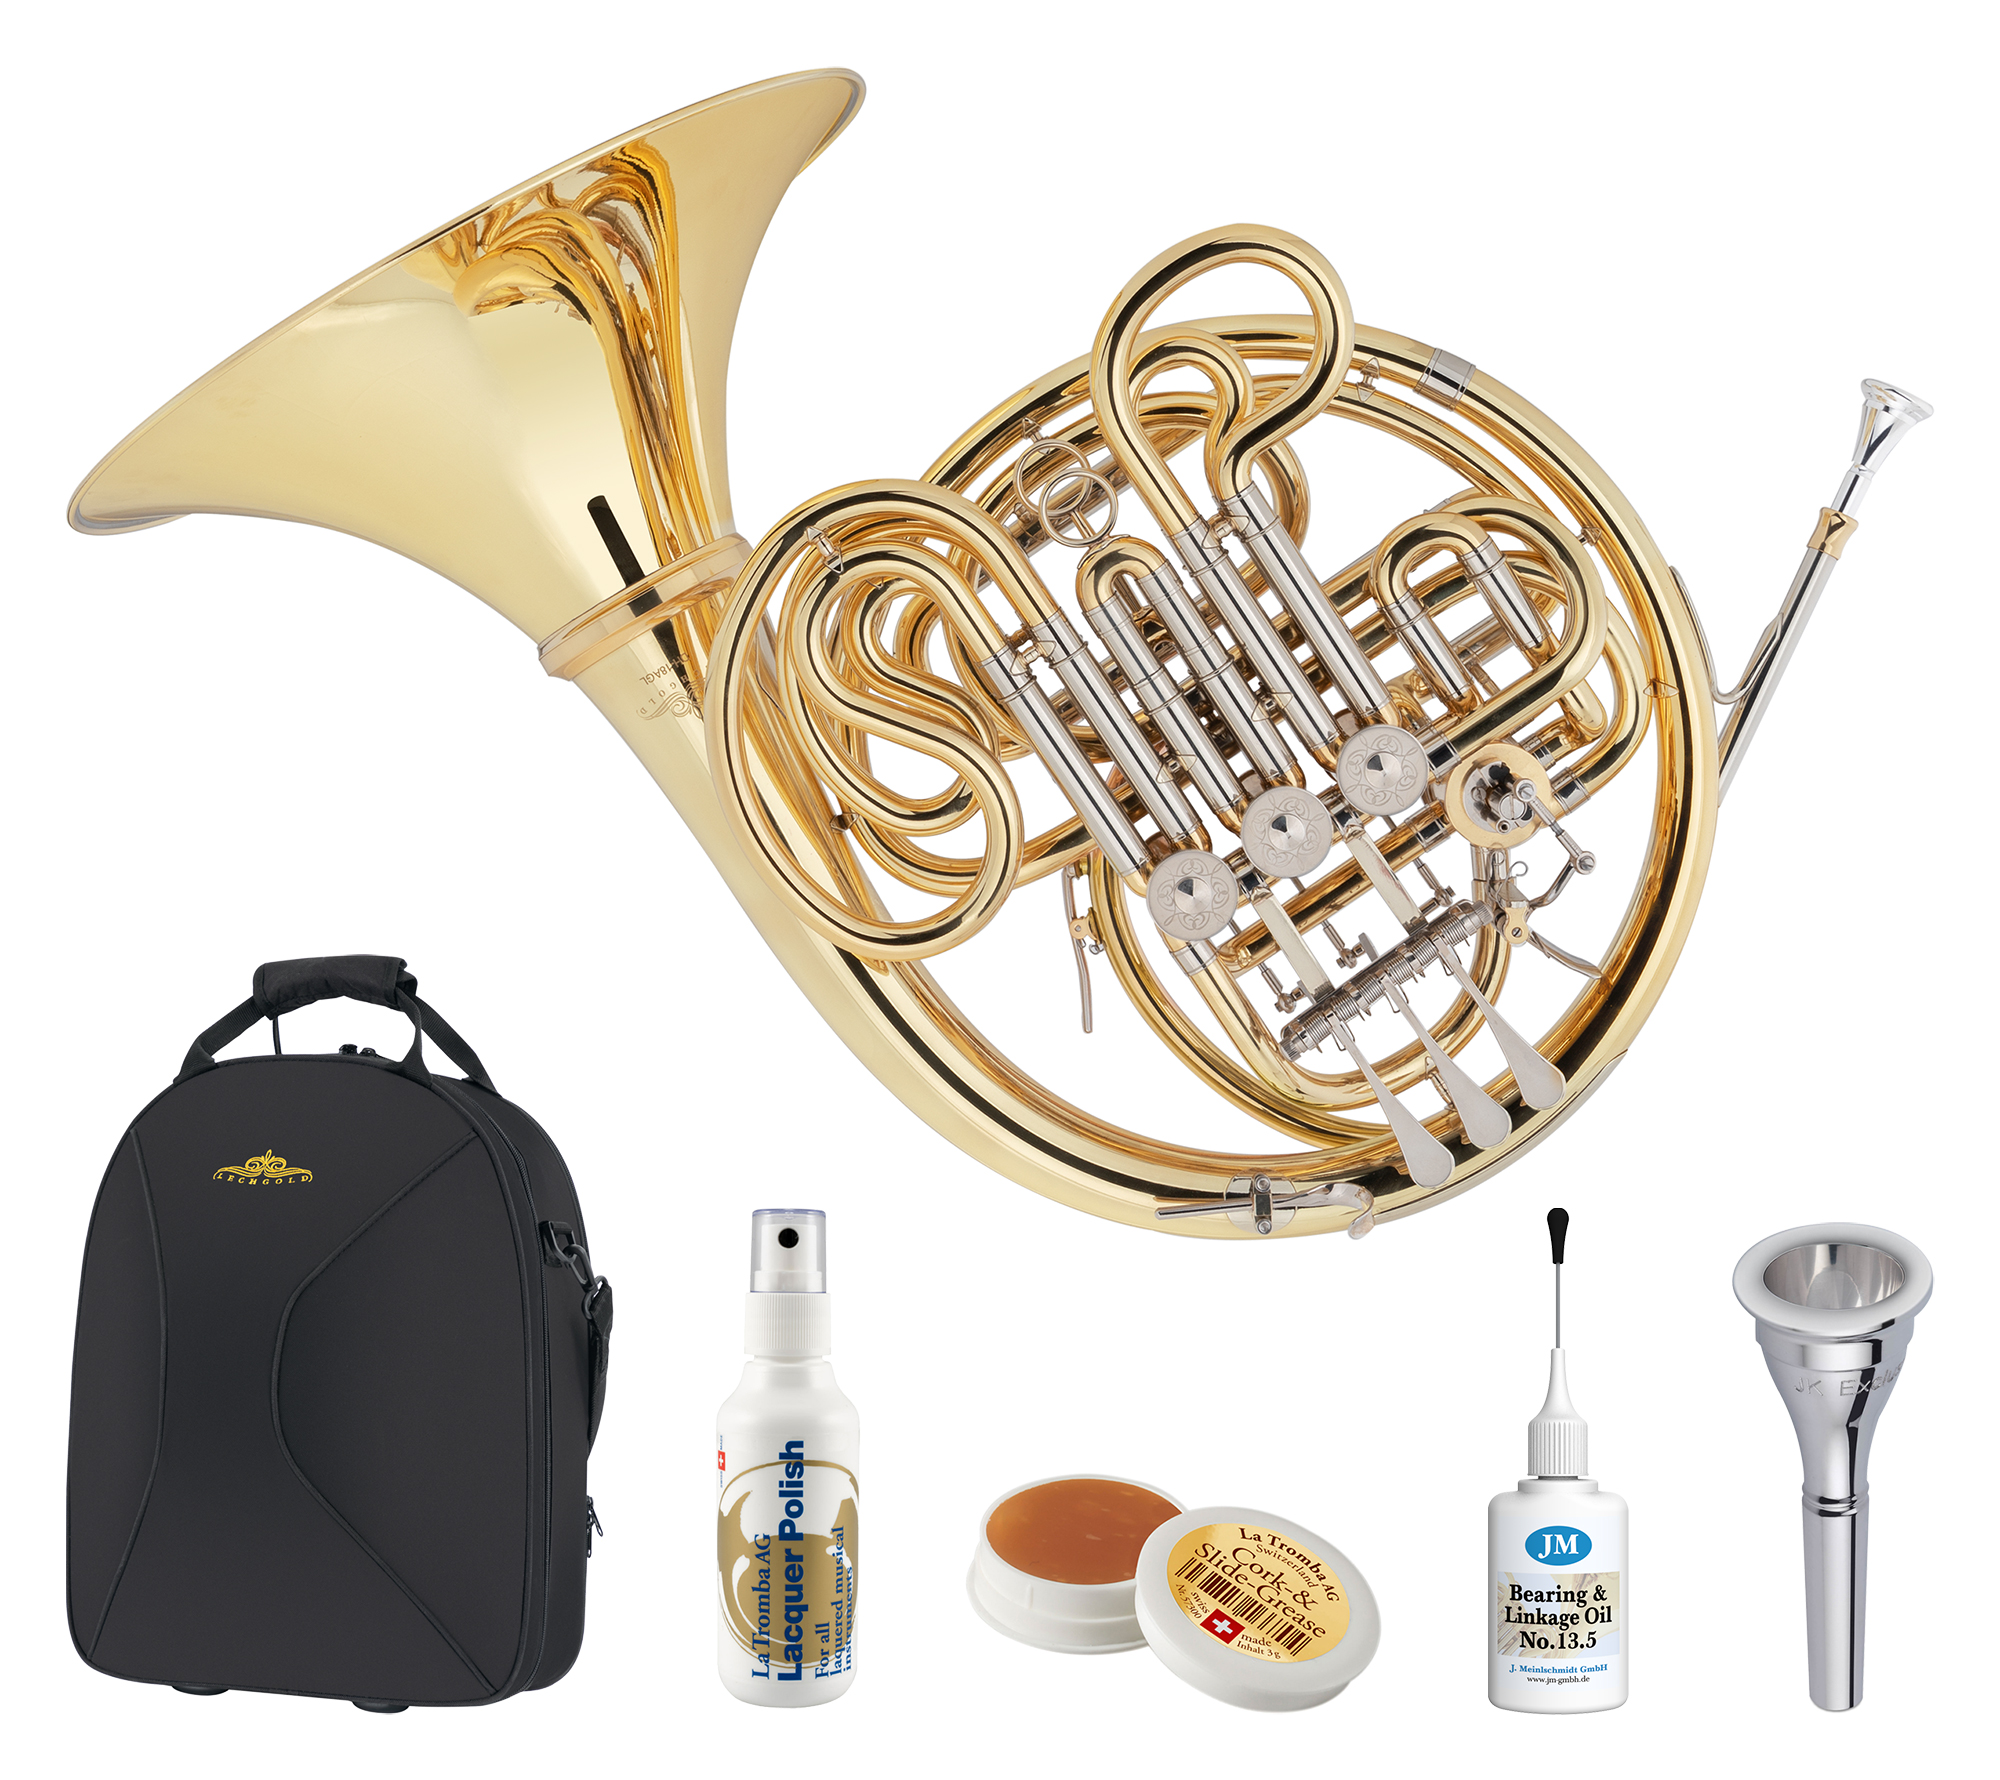 Hoerner - Lechgold DH 18AGL Doppelhorn Deluxe Set - Onlineshop Musikhaus Kirstein